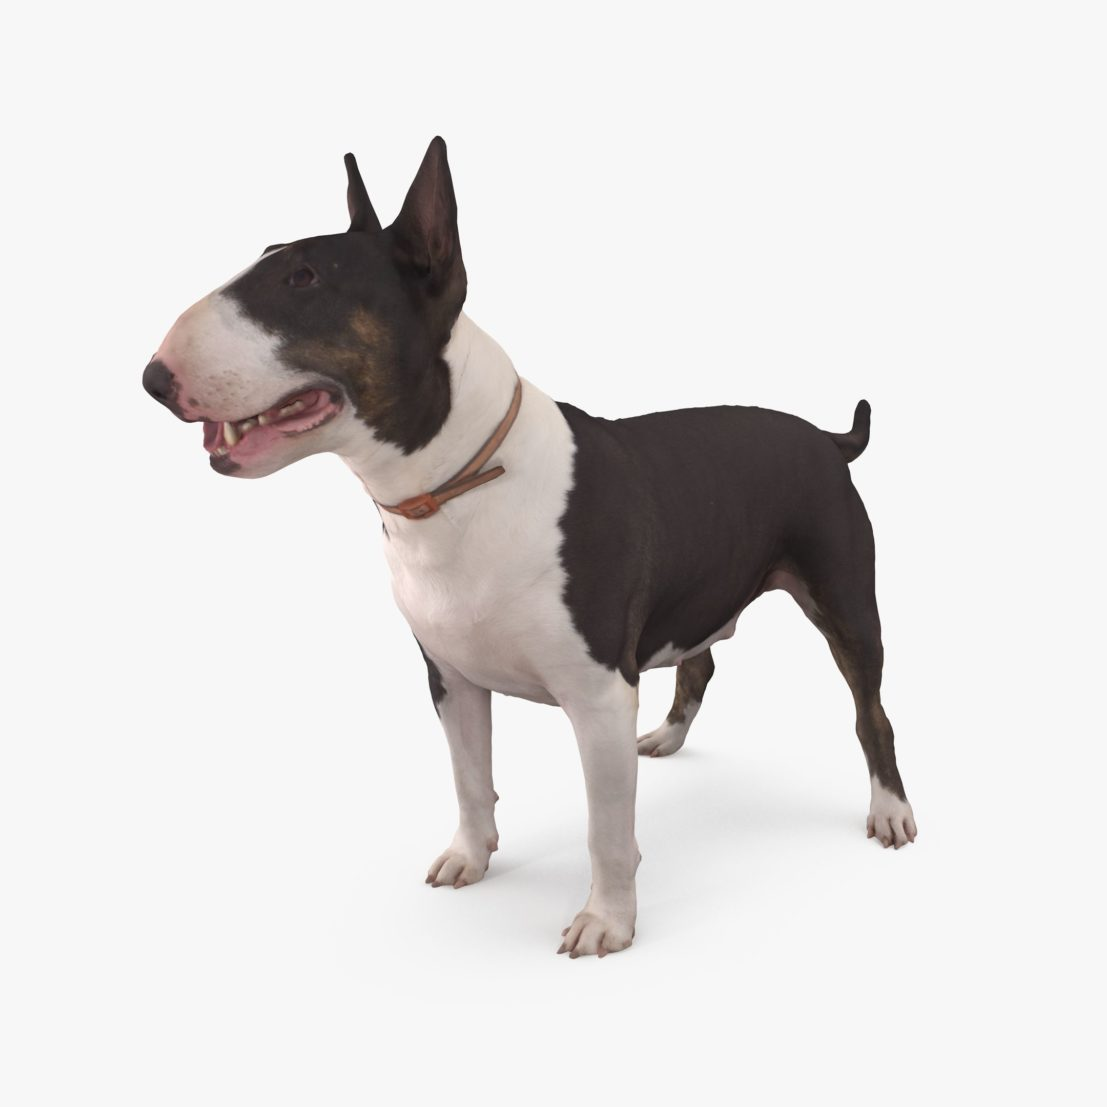 Bull Terrier Dog 3D Model | 3DTree Scanning Studio